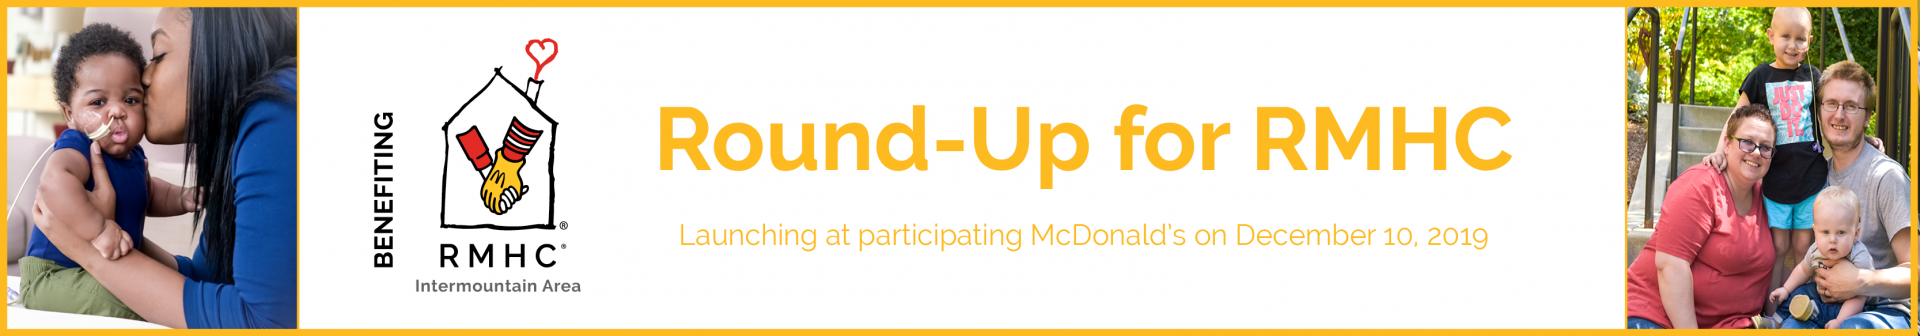 Round-Up for RMHC Banner